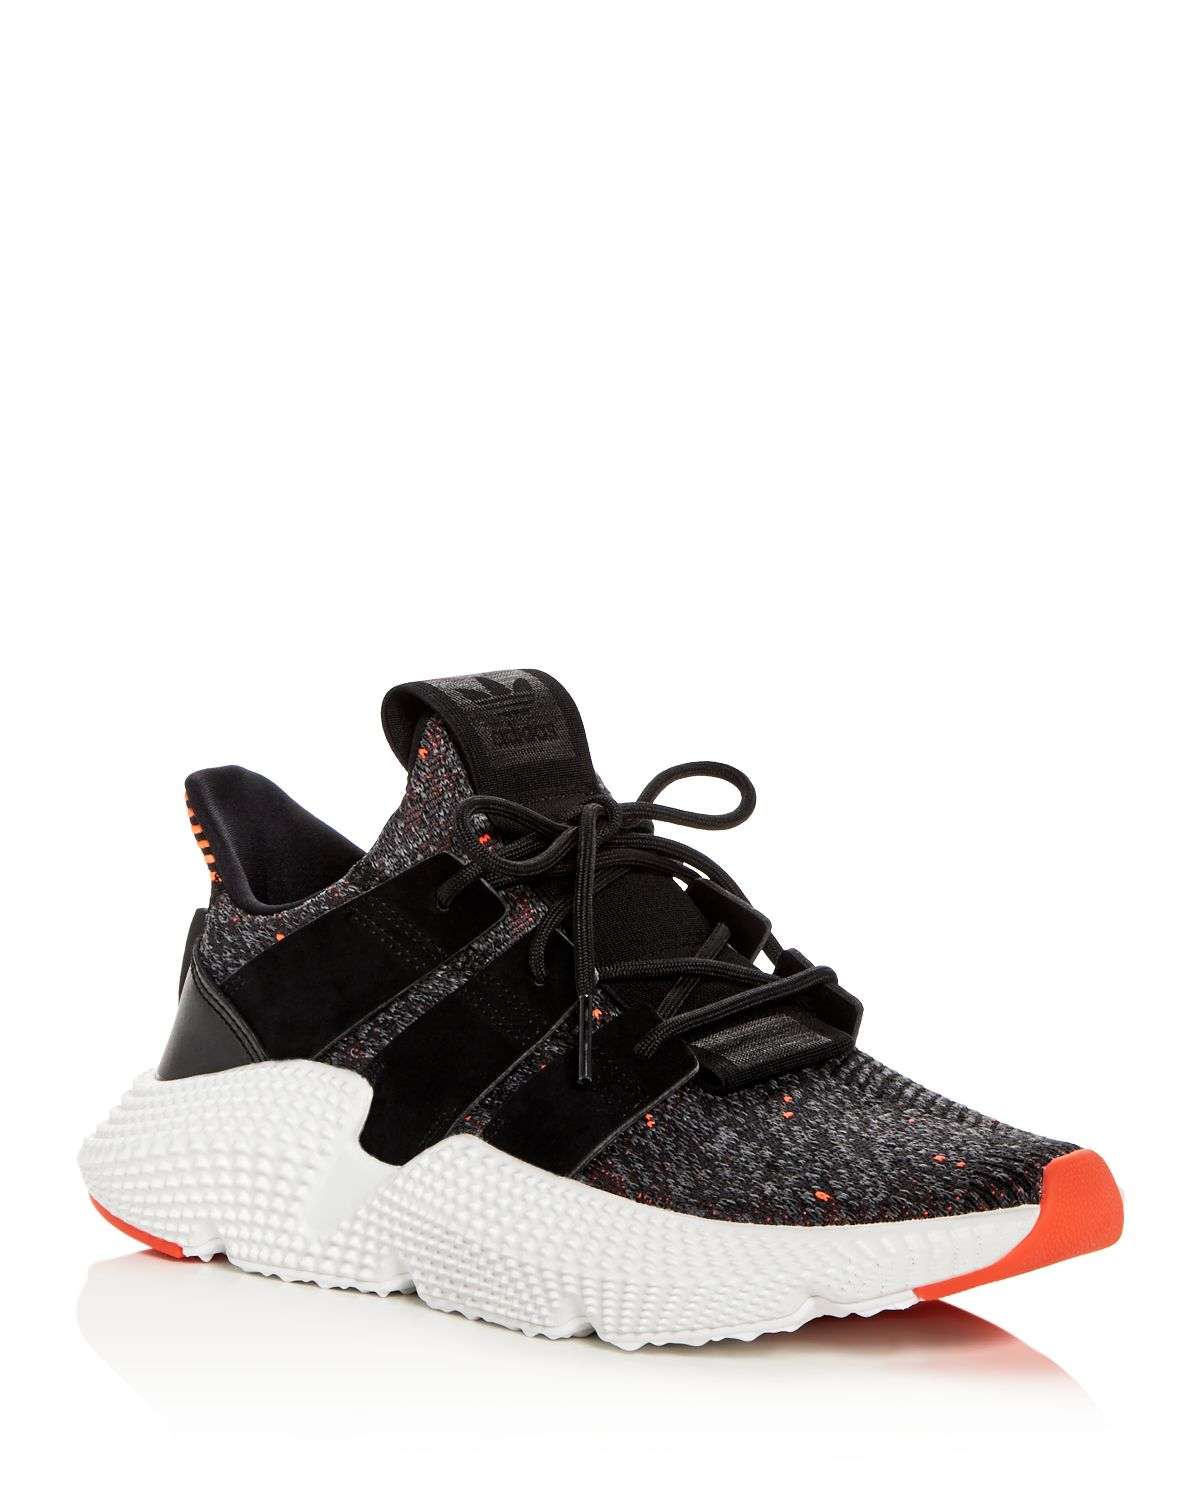 adidas Women's Prophere Knit Lace Up Sneakers